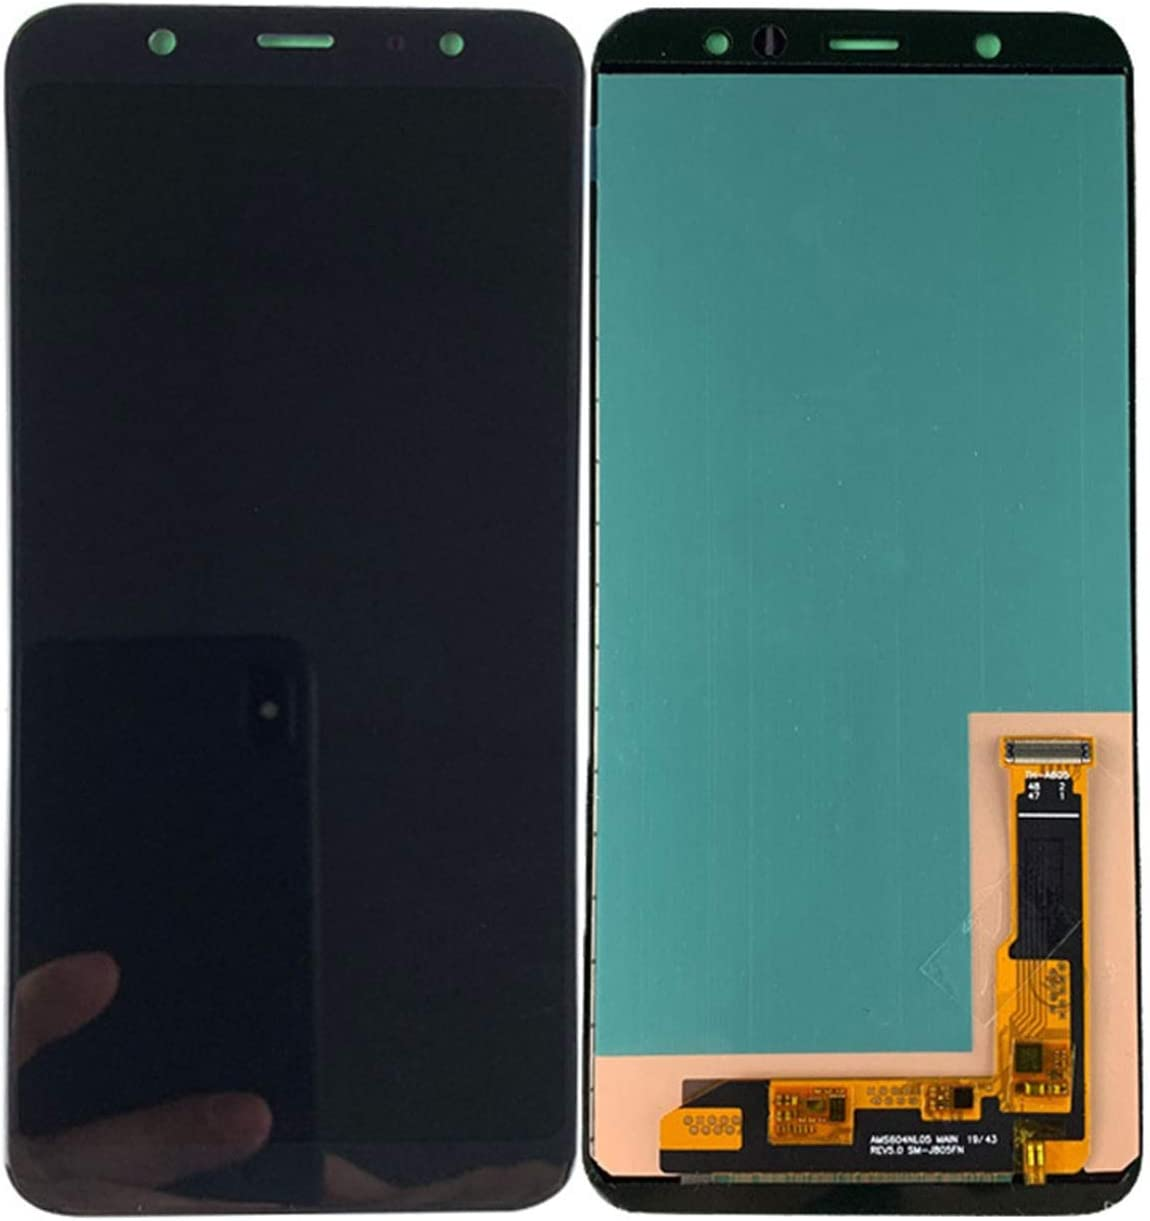 LQIAN Display Assembly Selling Challenge the lowest price and selling Touch Cellphone S A605 ScreenA605